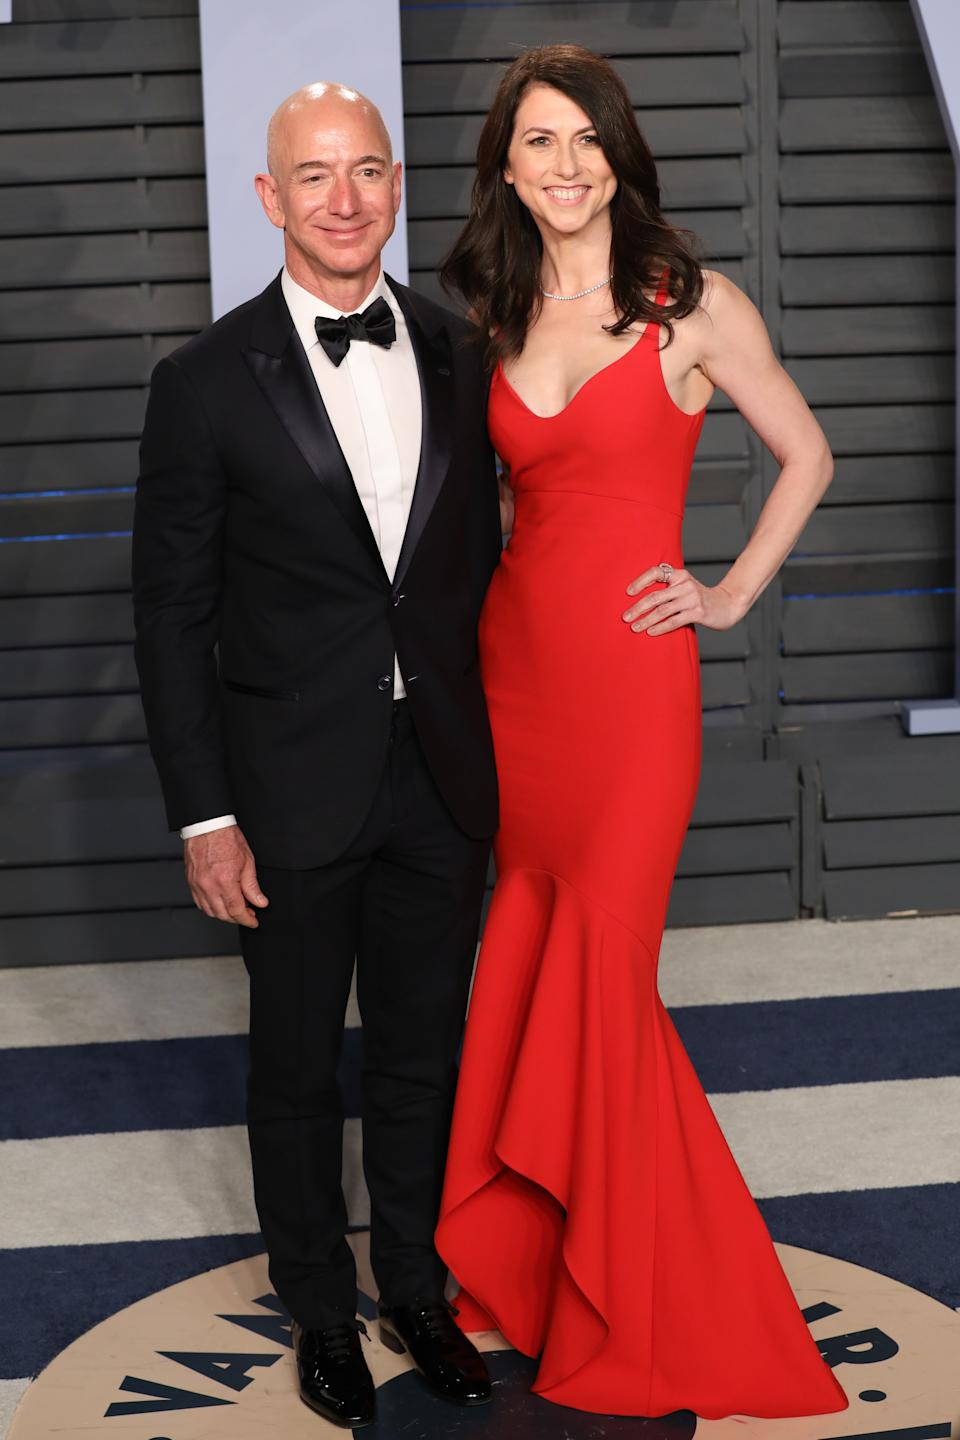 On January 9, 2019, Bezos and his wife of 25 years, MacKenzie, announced on Twitter their intent to divorce after a 'long period' of separation. On April 4, 2019, the divorce was finalised, with Bezos keeping 75% of the couple's Amazon stock and MacKenzie getting the remaining 25% ($35.6 billion) in Amazon stock. However, Bezos would keep all of the couple's voting rights.